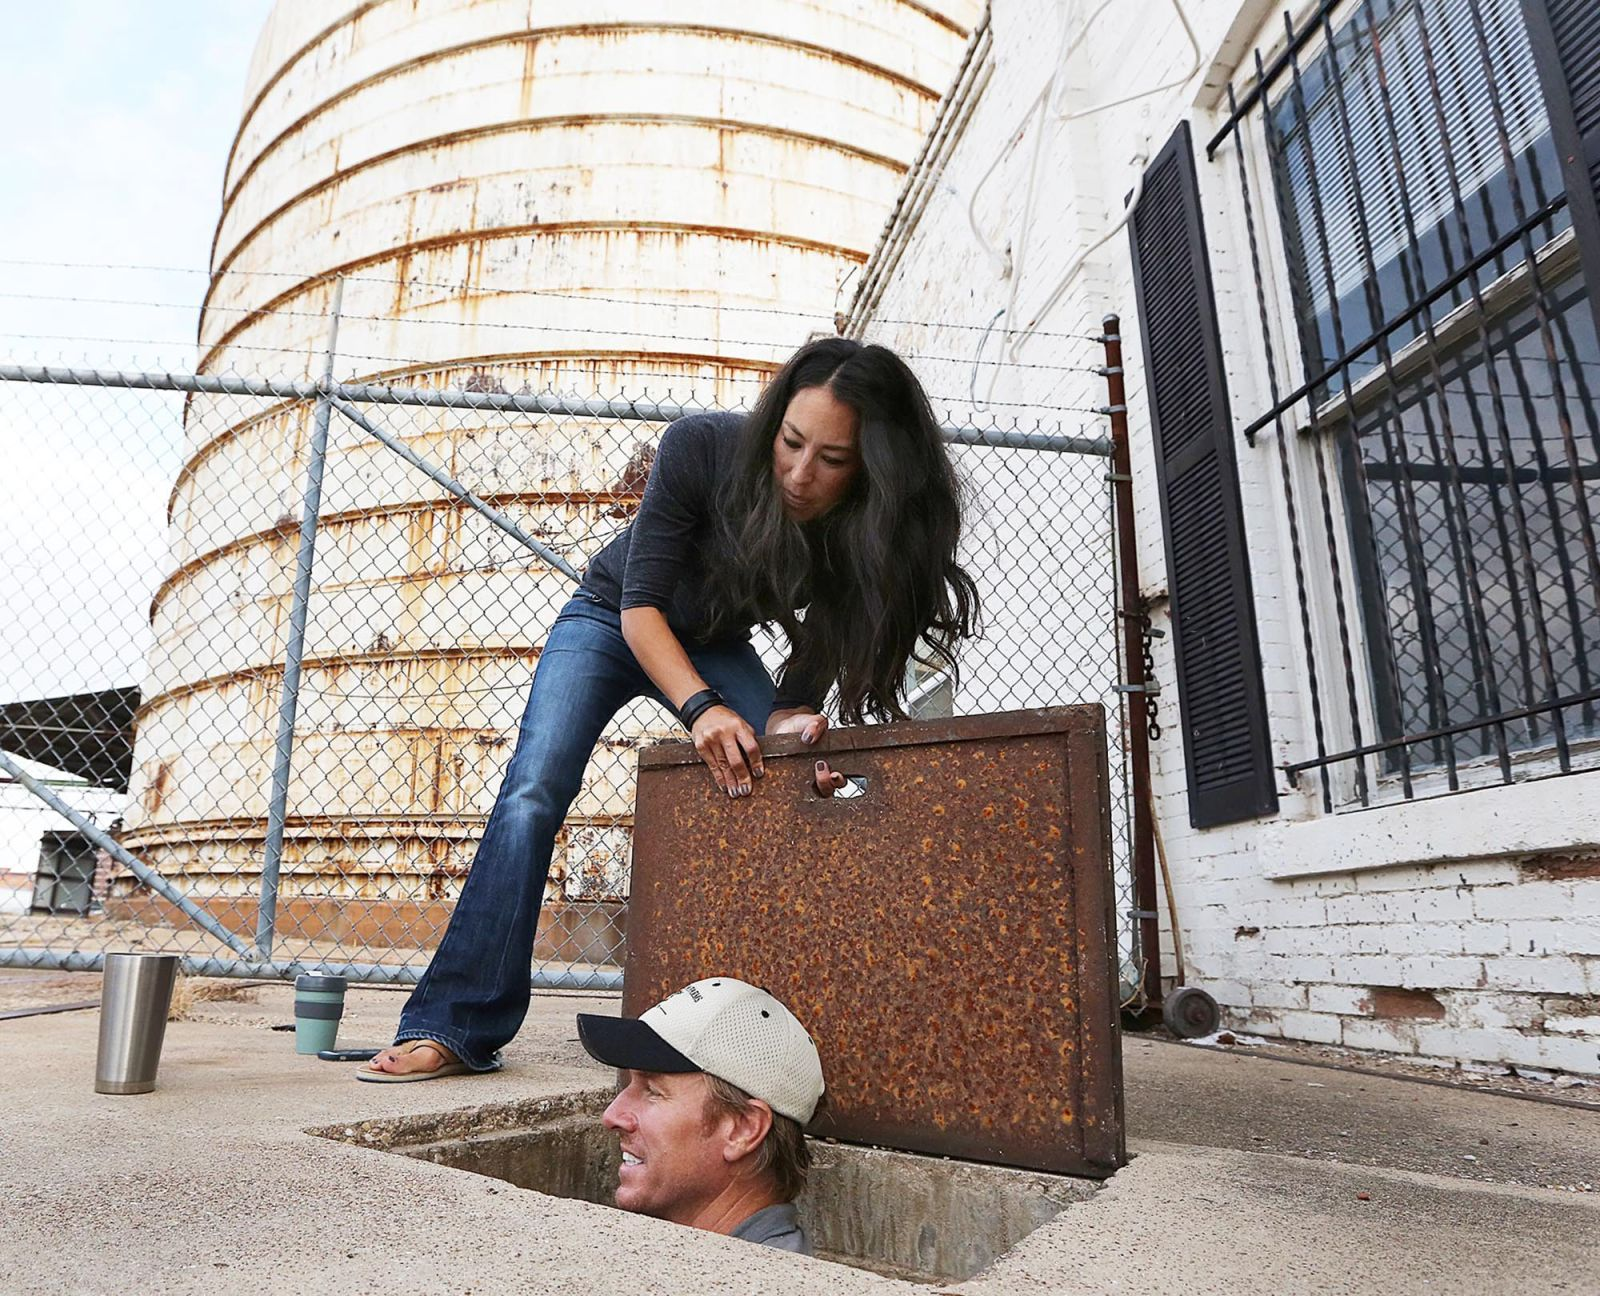 Hgtv stars get board s ok for century old cotton oil mill for Pictures of chip and joanna gaines